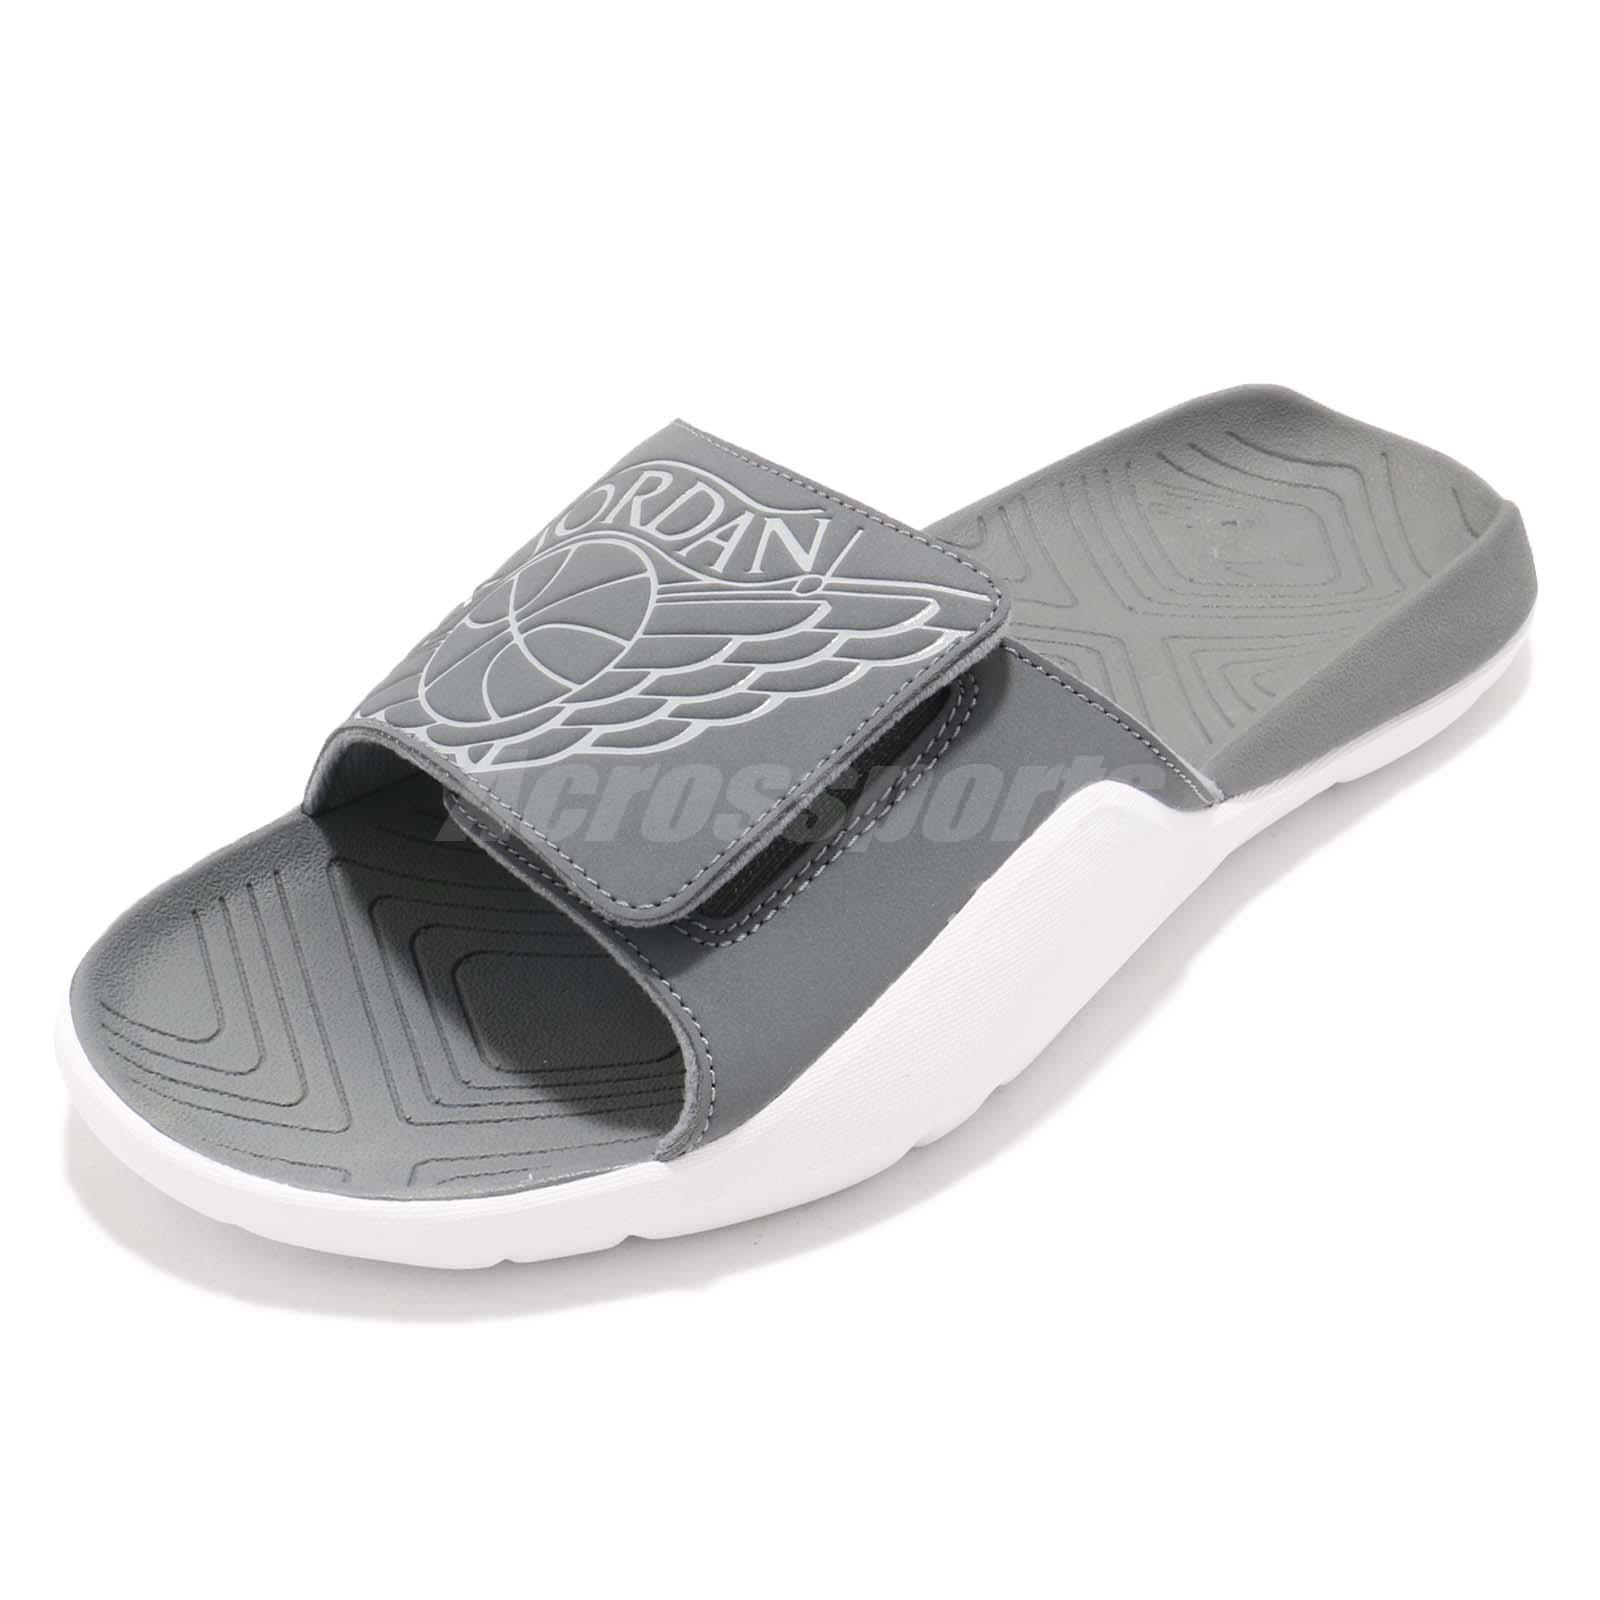 b6e22ca54cacb Nike Jordan Hydro 7 VII Grey White Men Sports Sandal Slides Slippers  AA2517-002